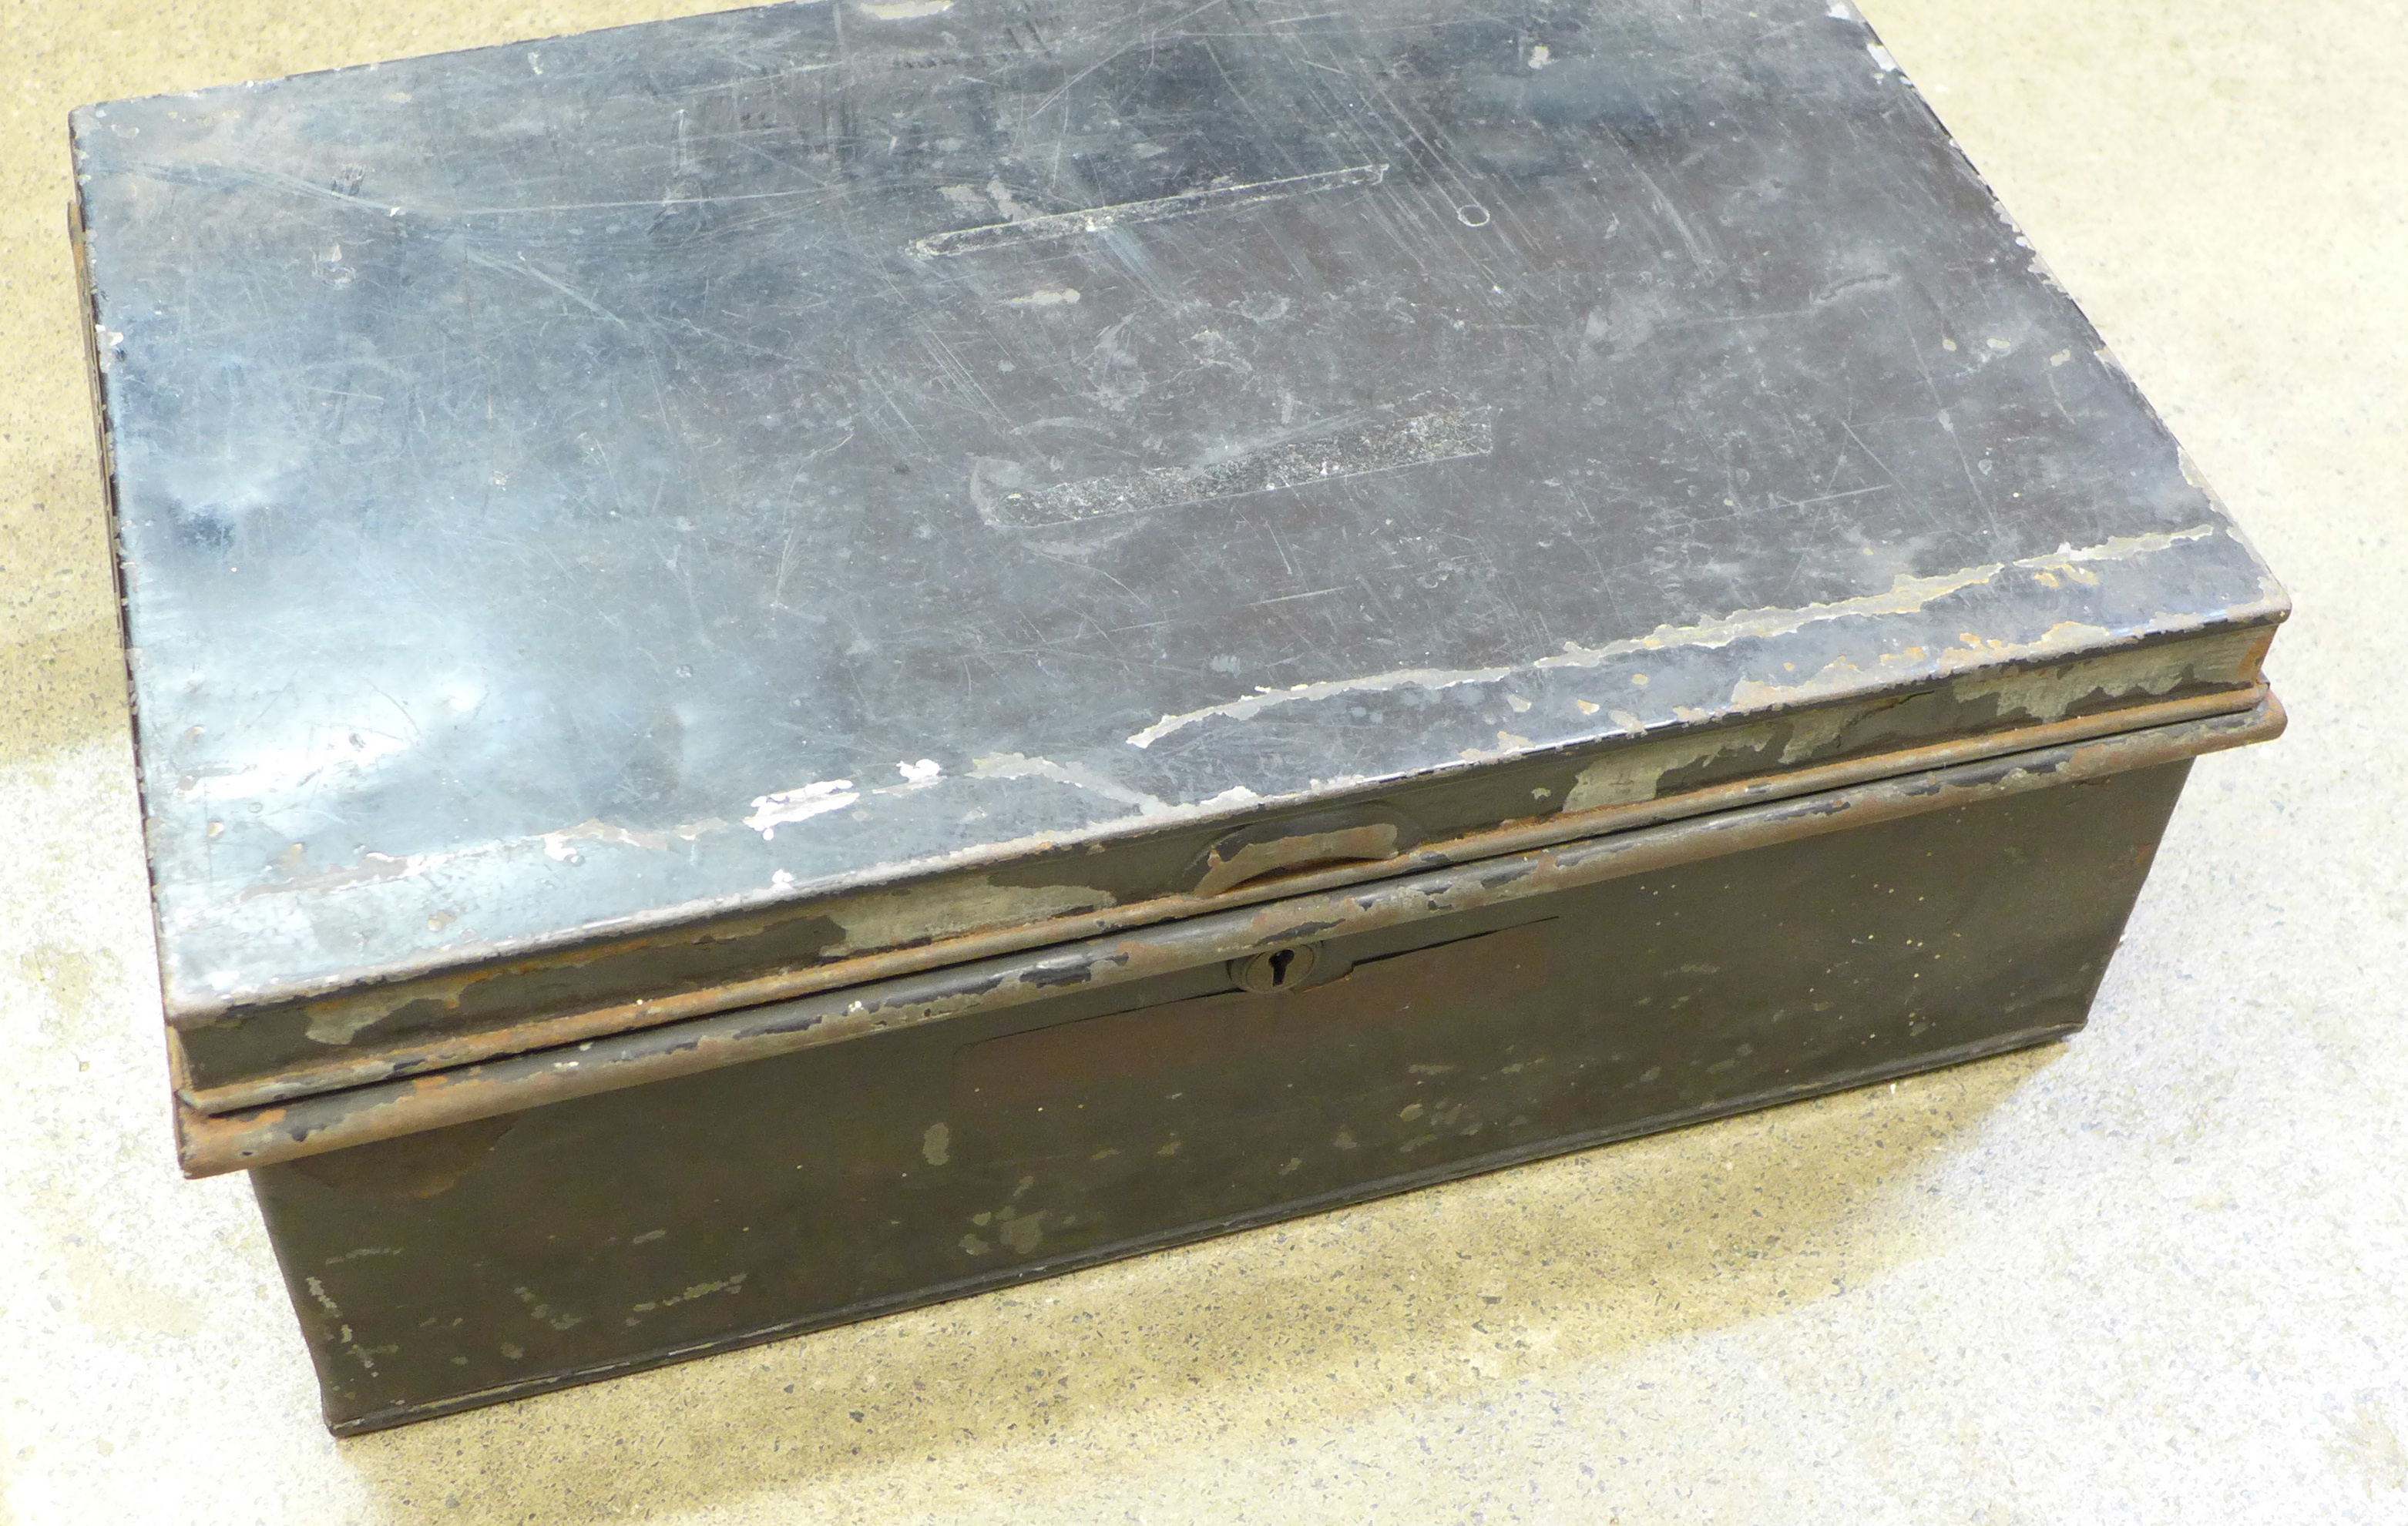 Lot 708 - A tin trunk with other tins, old keys, hobby tools, etc.